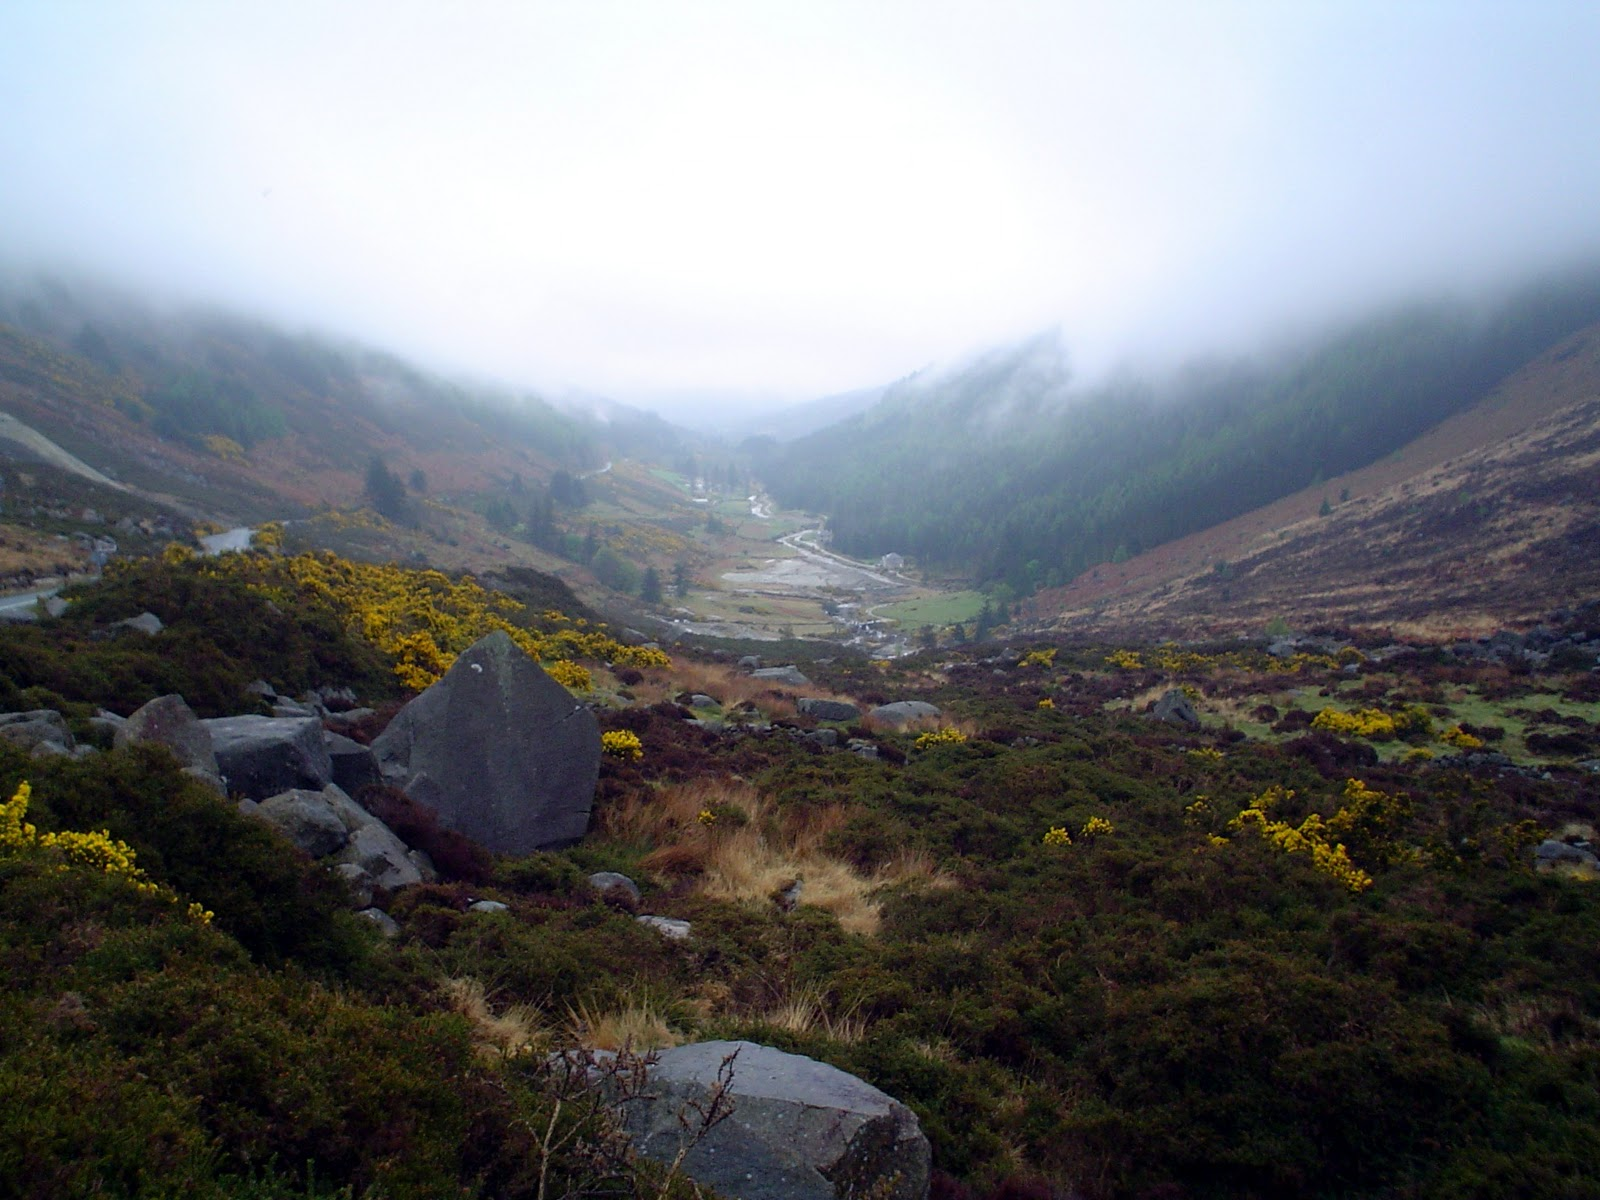 Wicklow Ireland  City new picture : The Vegetarians Abroad: Wicklow Mountains County Wicklow